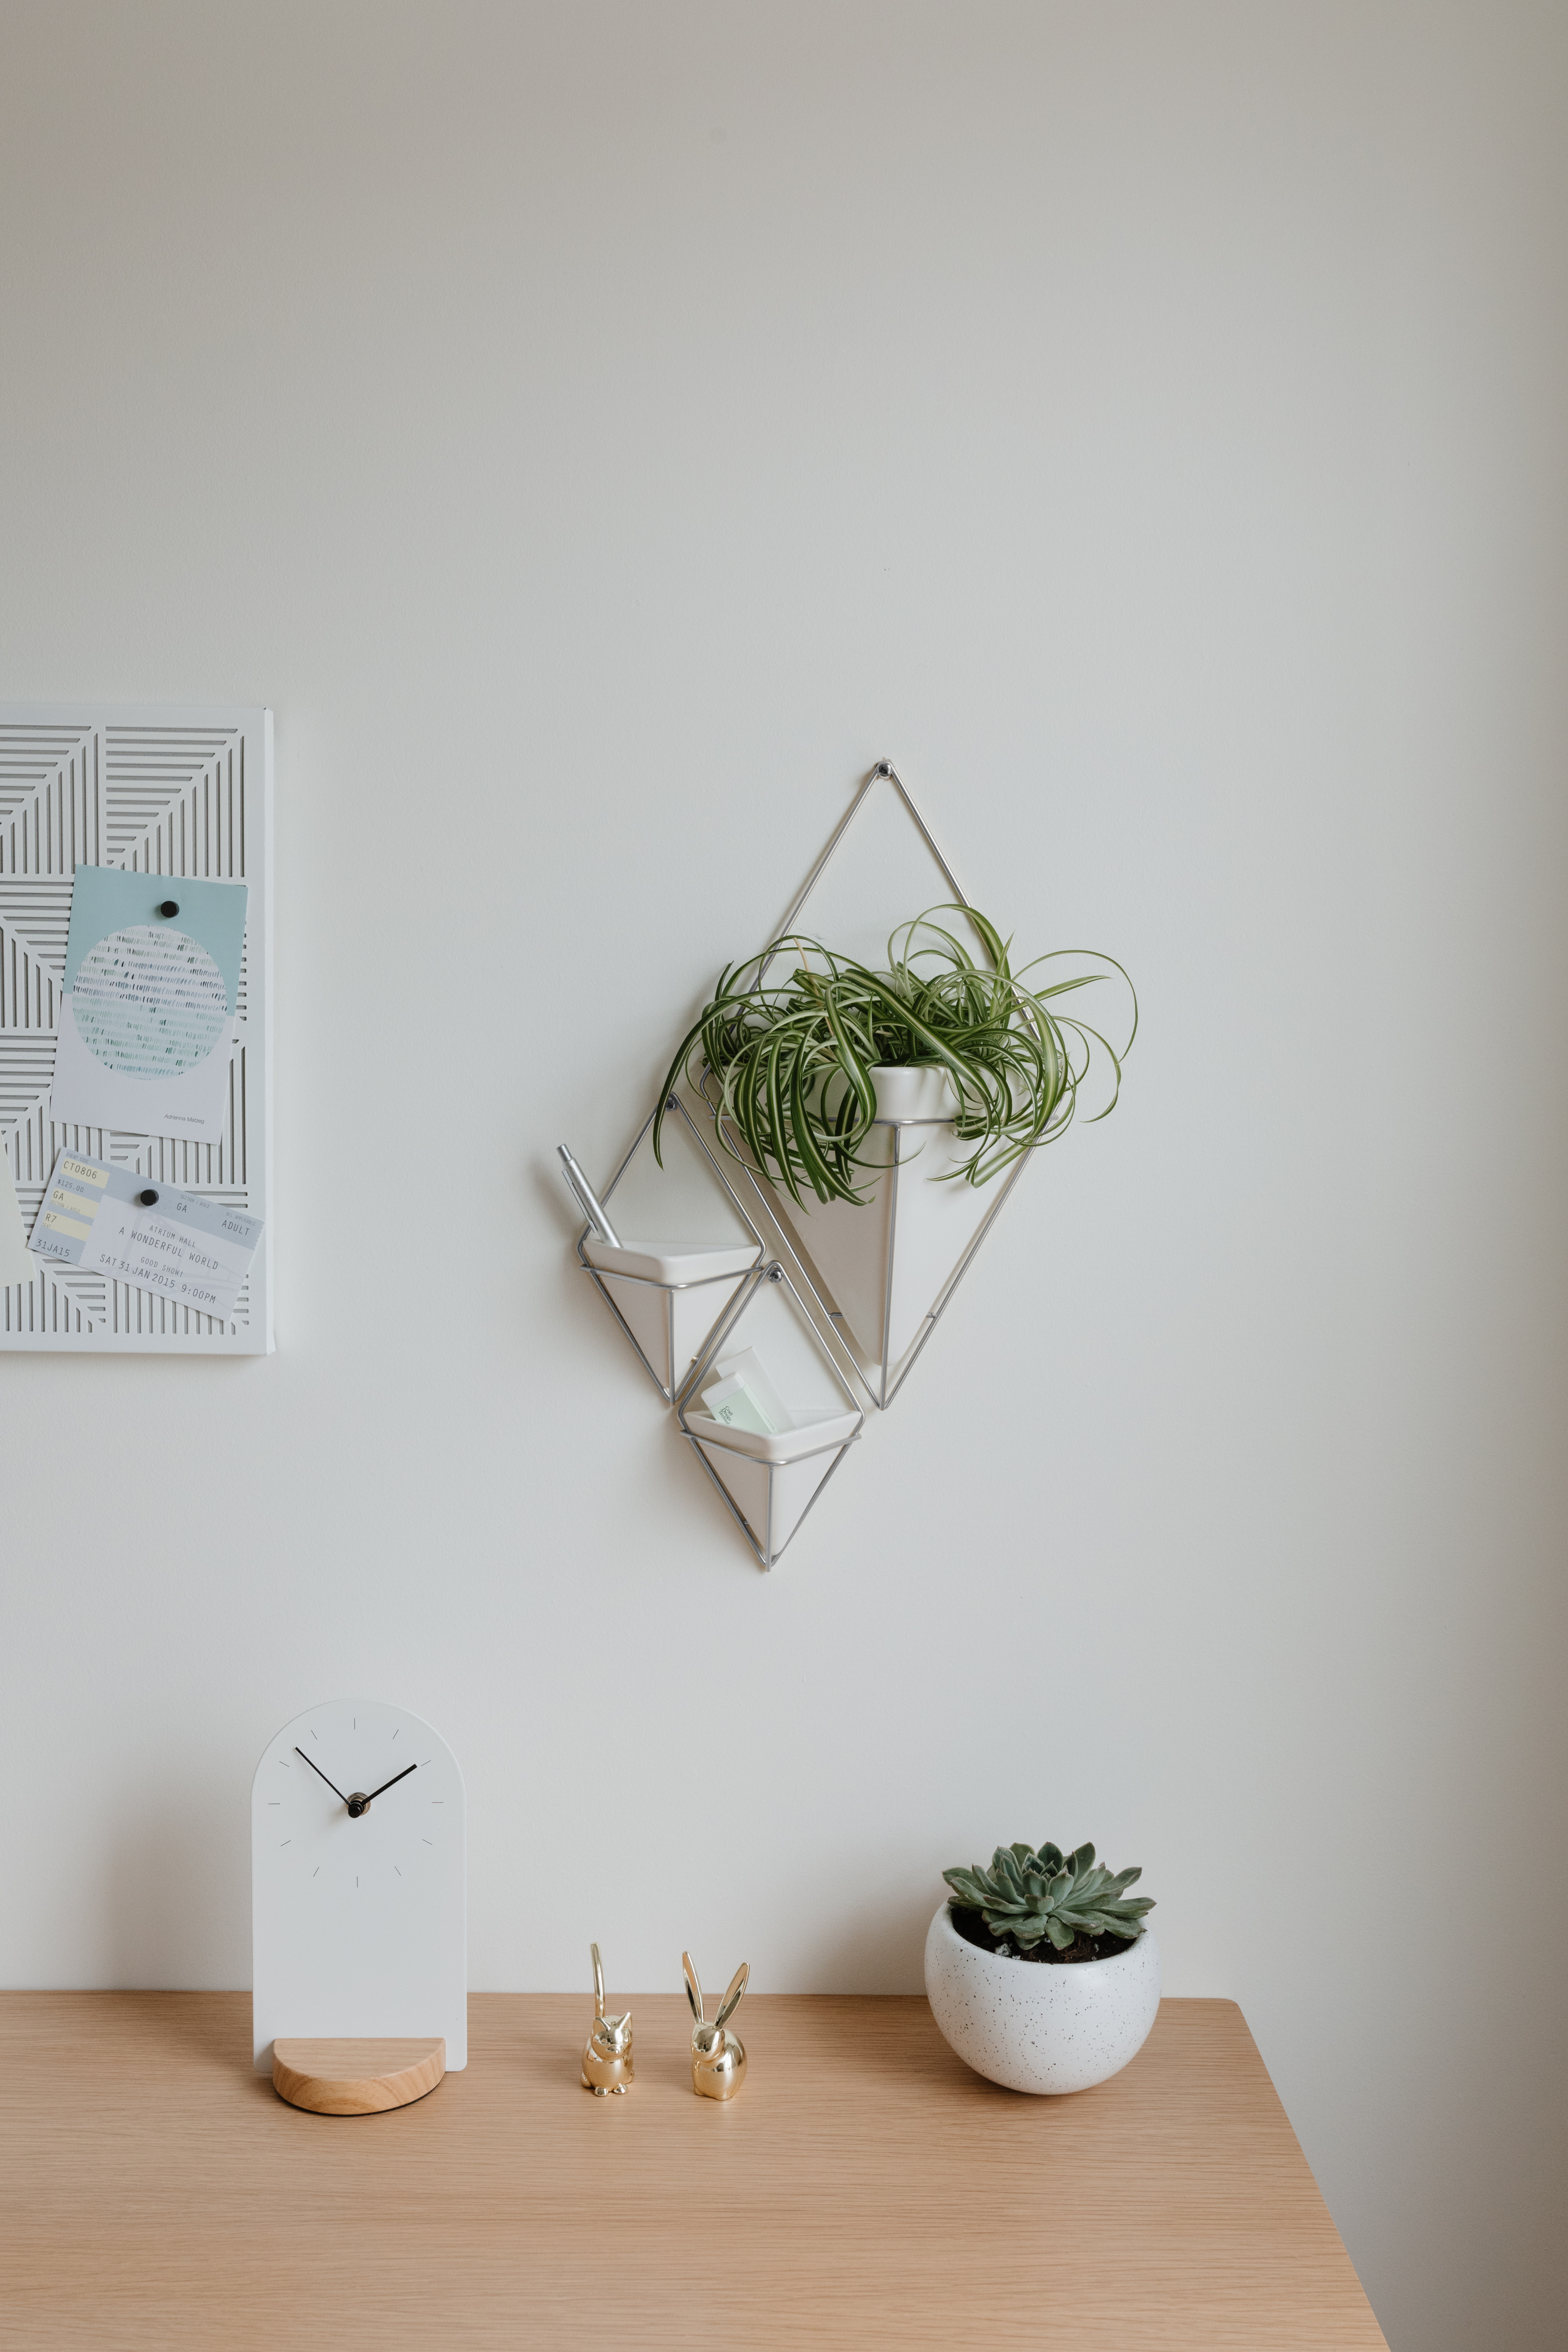 2 Piece Trigg Wall Decor Sets (Set Of 2) Pertaining To Trendy Trigg Hanging Planter Vase & Geometric Wall Decor Container – Great (View 2 of 20)